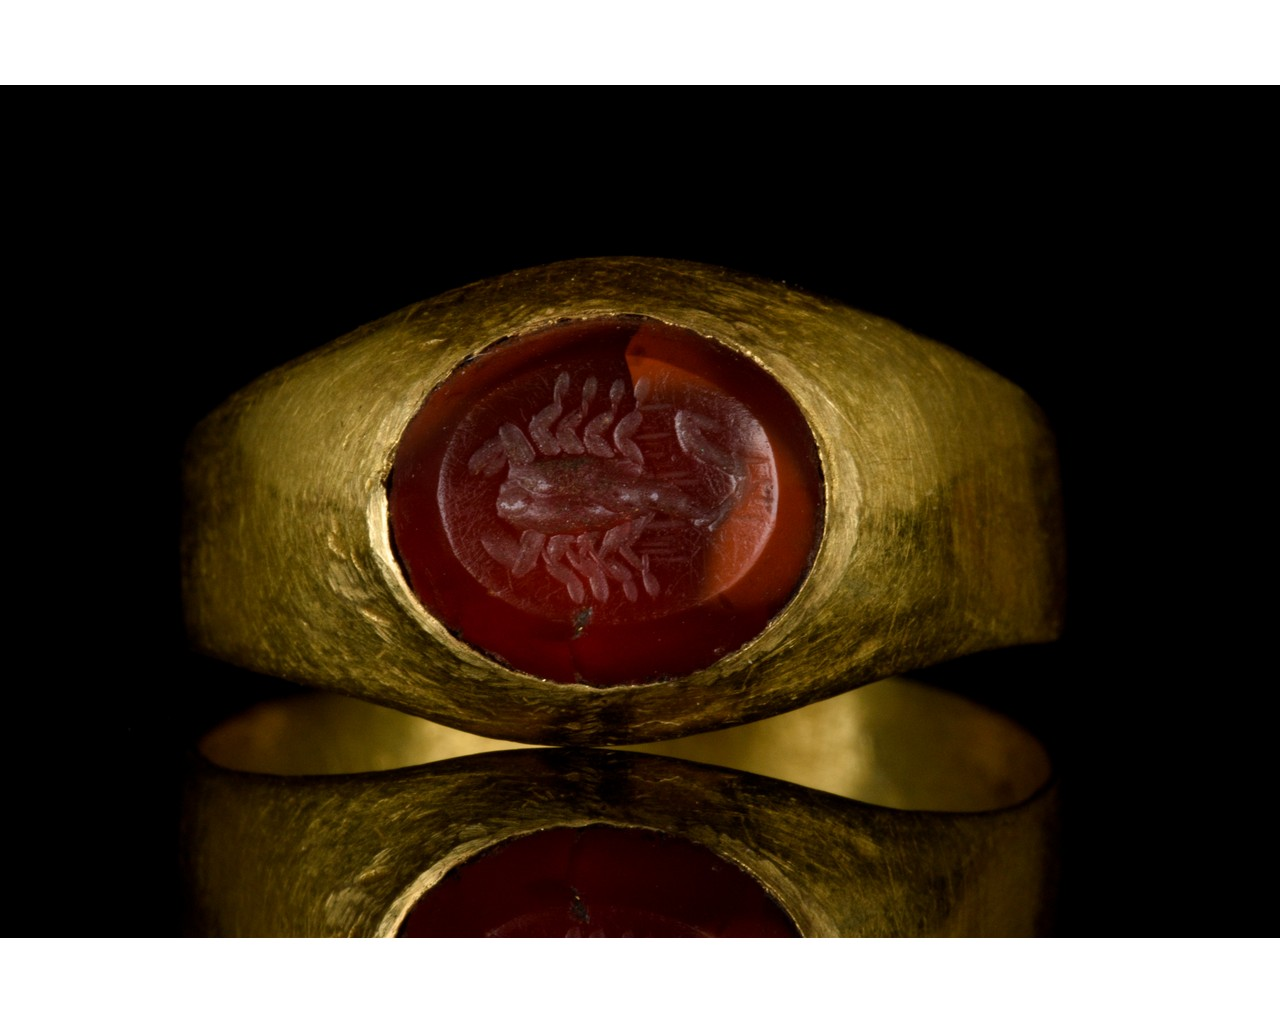 ROMAN GOLD AND CARNELIAN INTAGLIO RING WITH SCORPION - Image 2 of 7